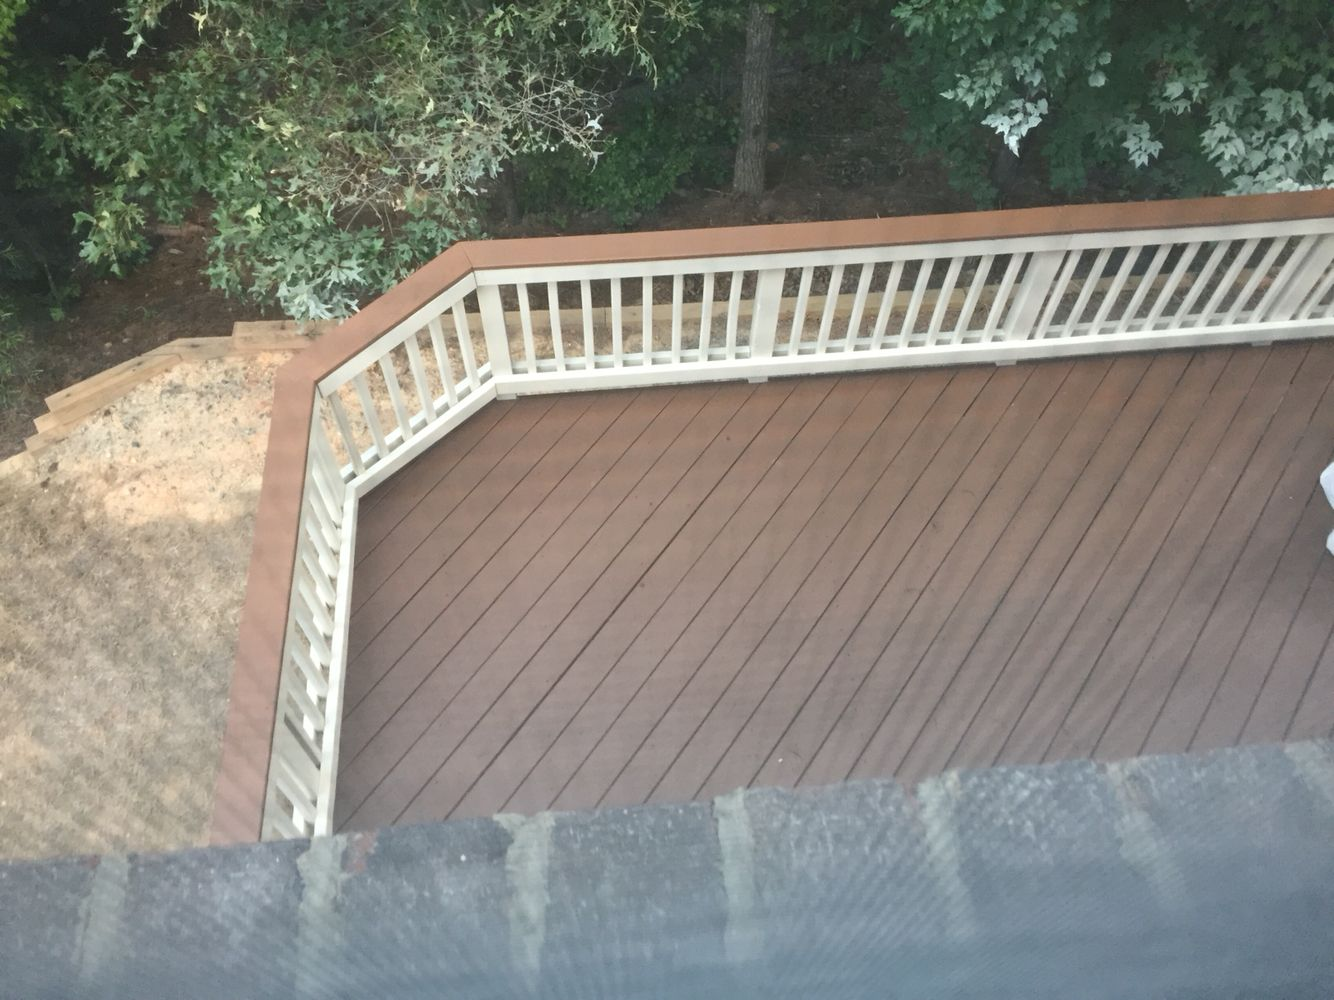 Two Toned Deck Sherwin Williams Pine Cone Deck Stain With Navajo White Rails Deck Colors Staining Deck Deck Paint